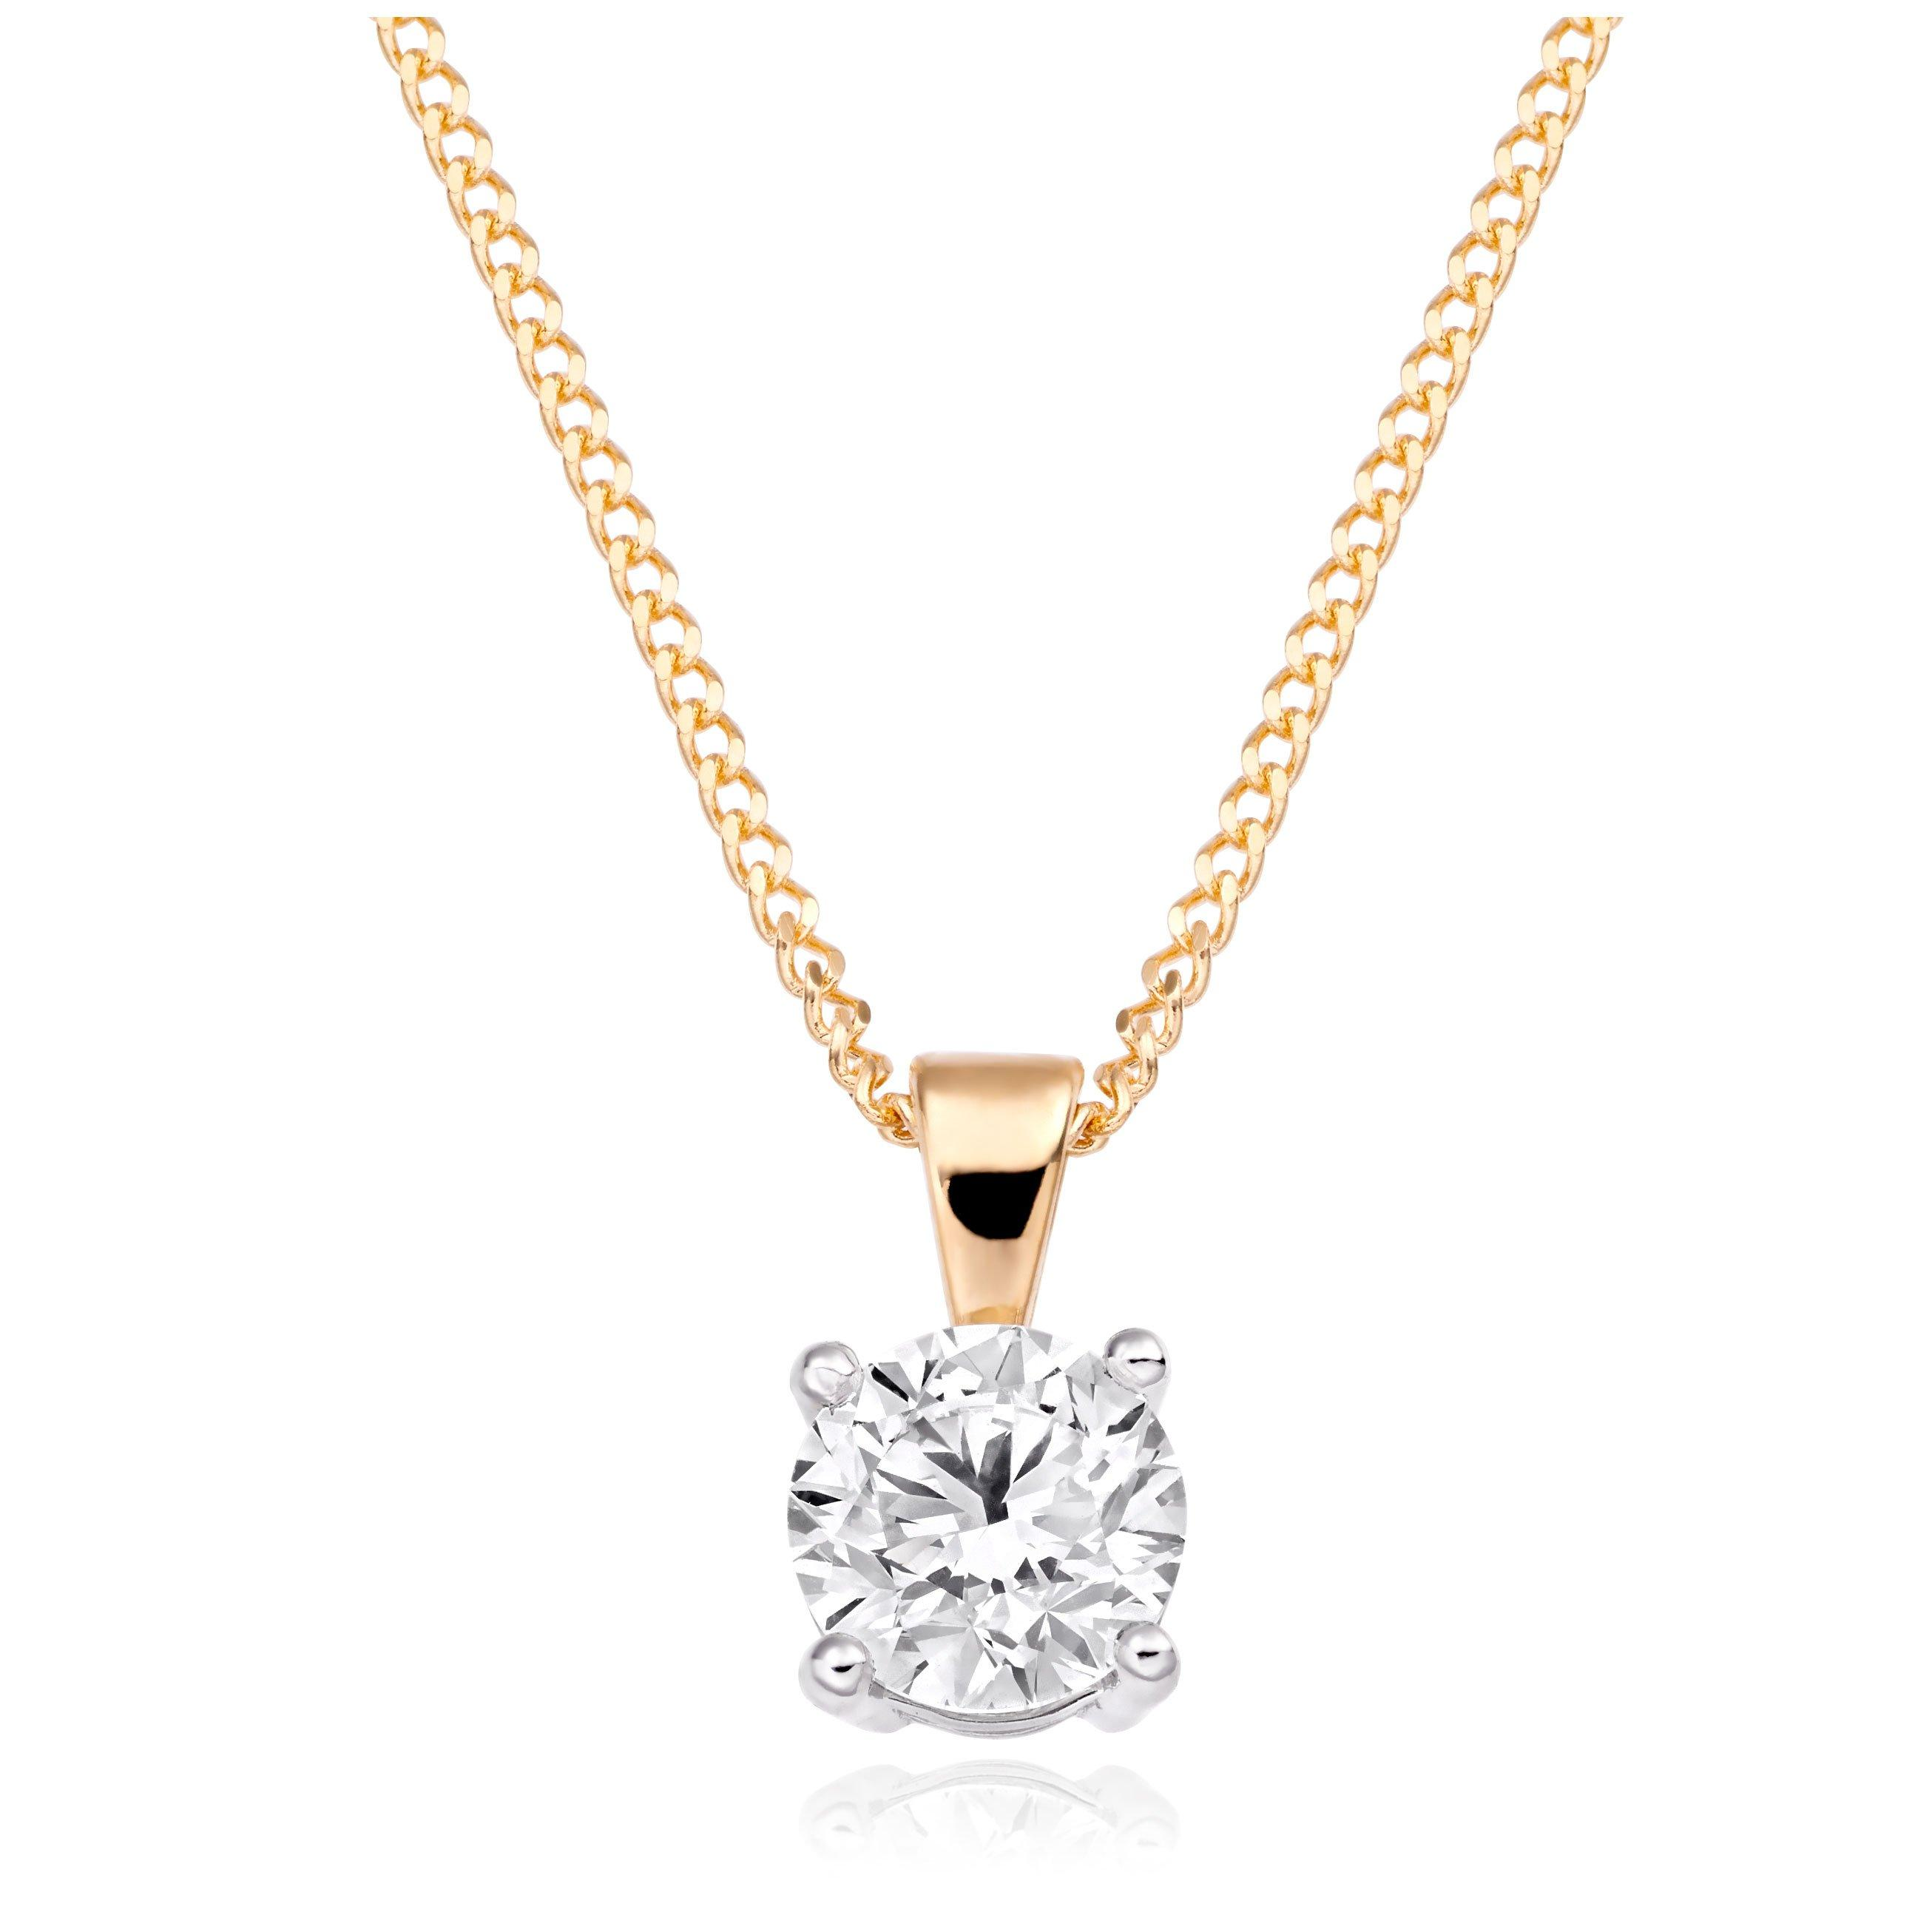 18ct Gold Diamond Pendant